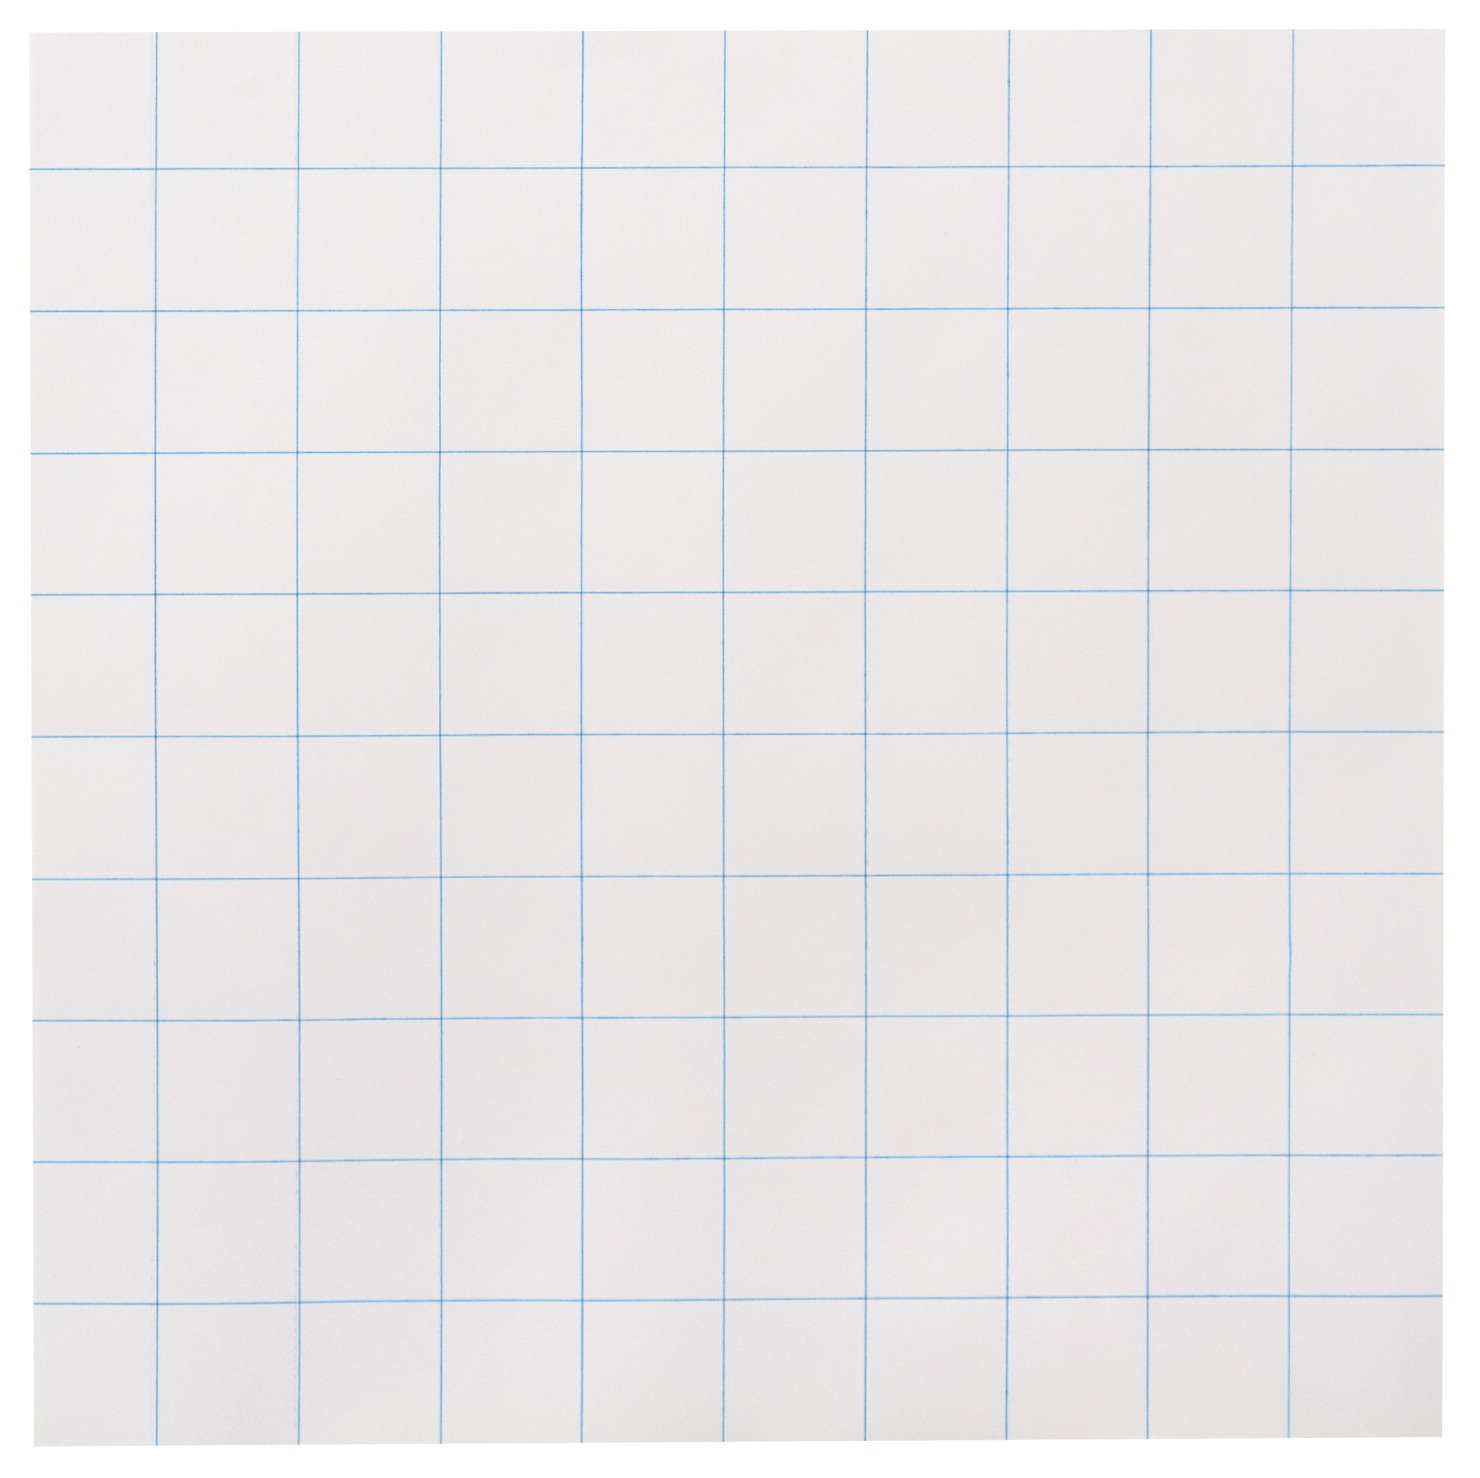 School Smart Three Hole Punched Graph Paper with 1 inch Rule - 10 x 10 inches - Ream of 500 - White